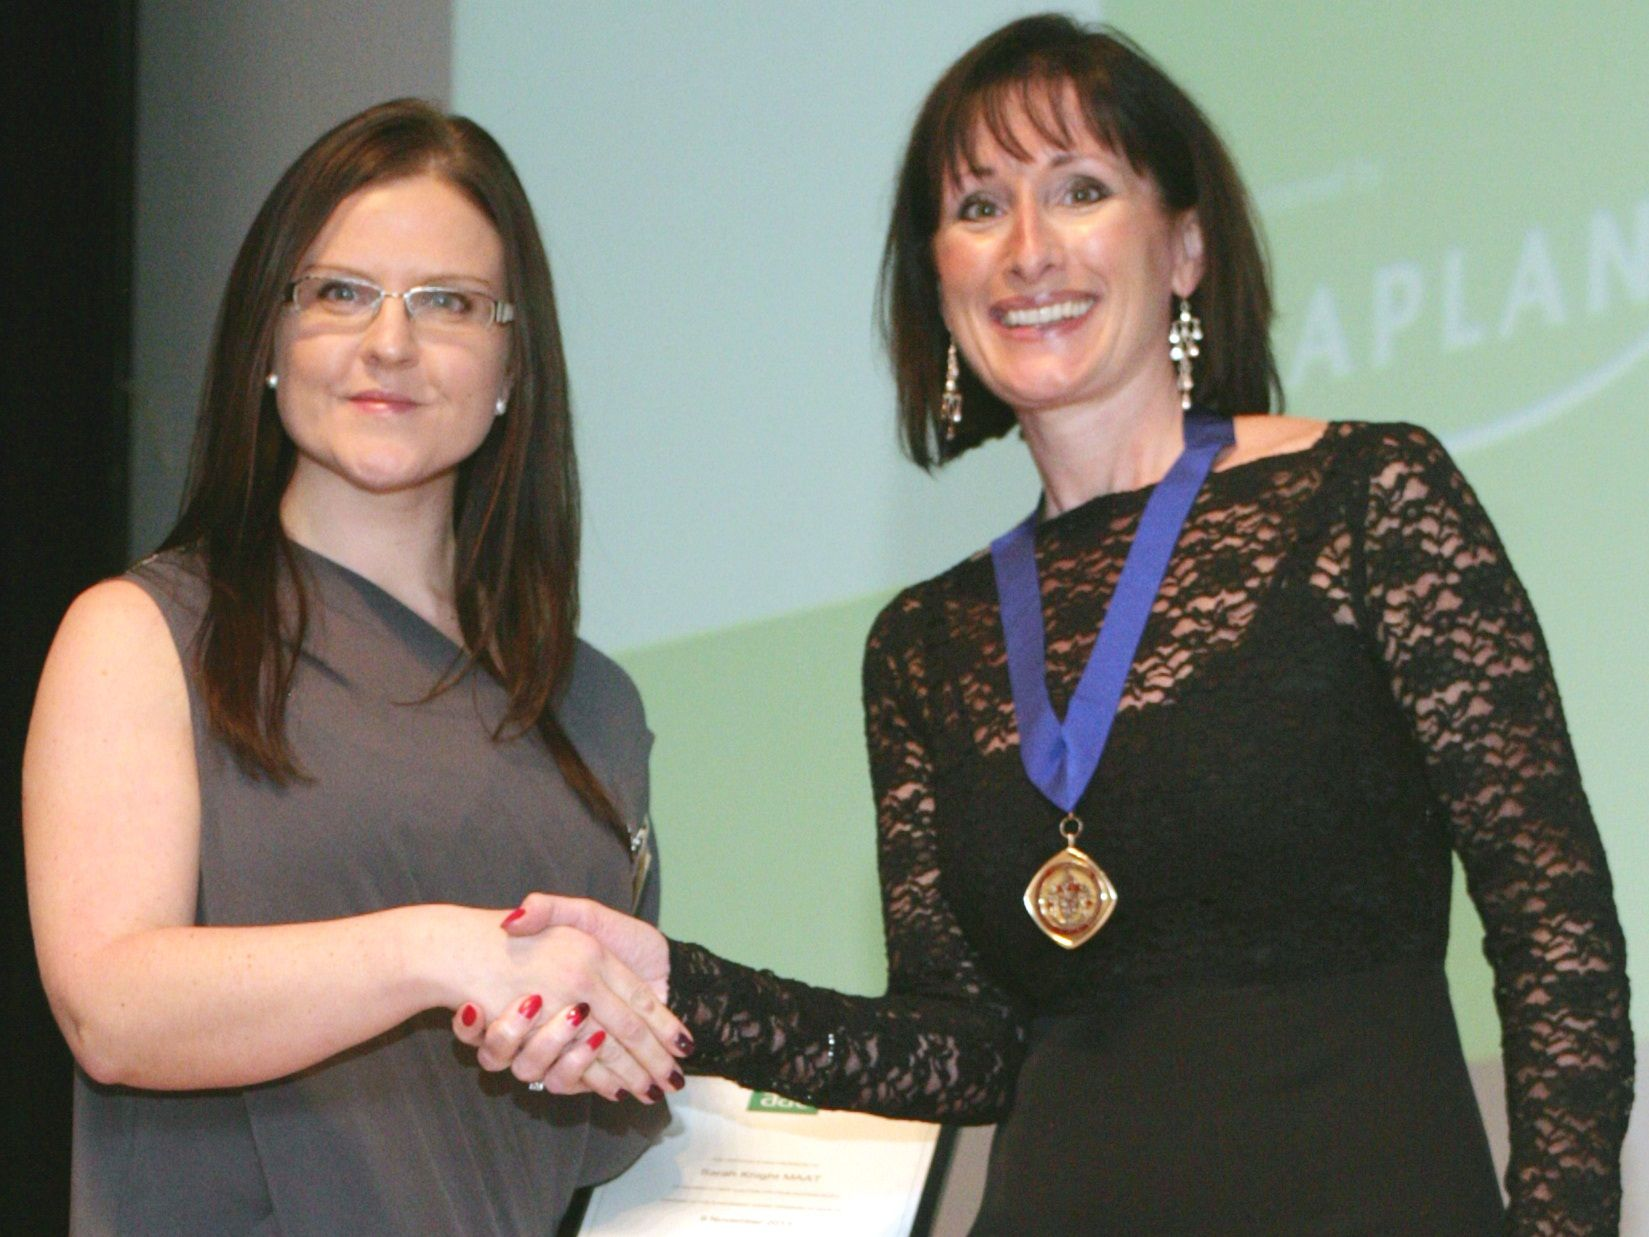 Sarah Knight MAAT is presented the 2013 AAT CPD prize by AAT Vice President, Dr Rachel Banfield (MA CPFA PGCHE FHEA FMAAT)